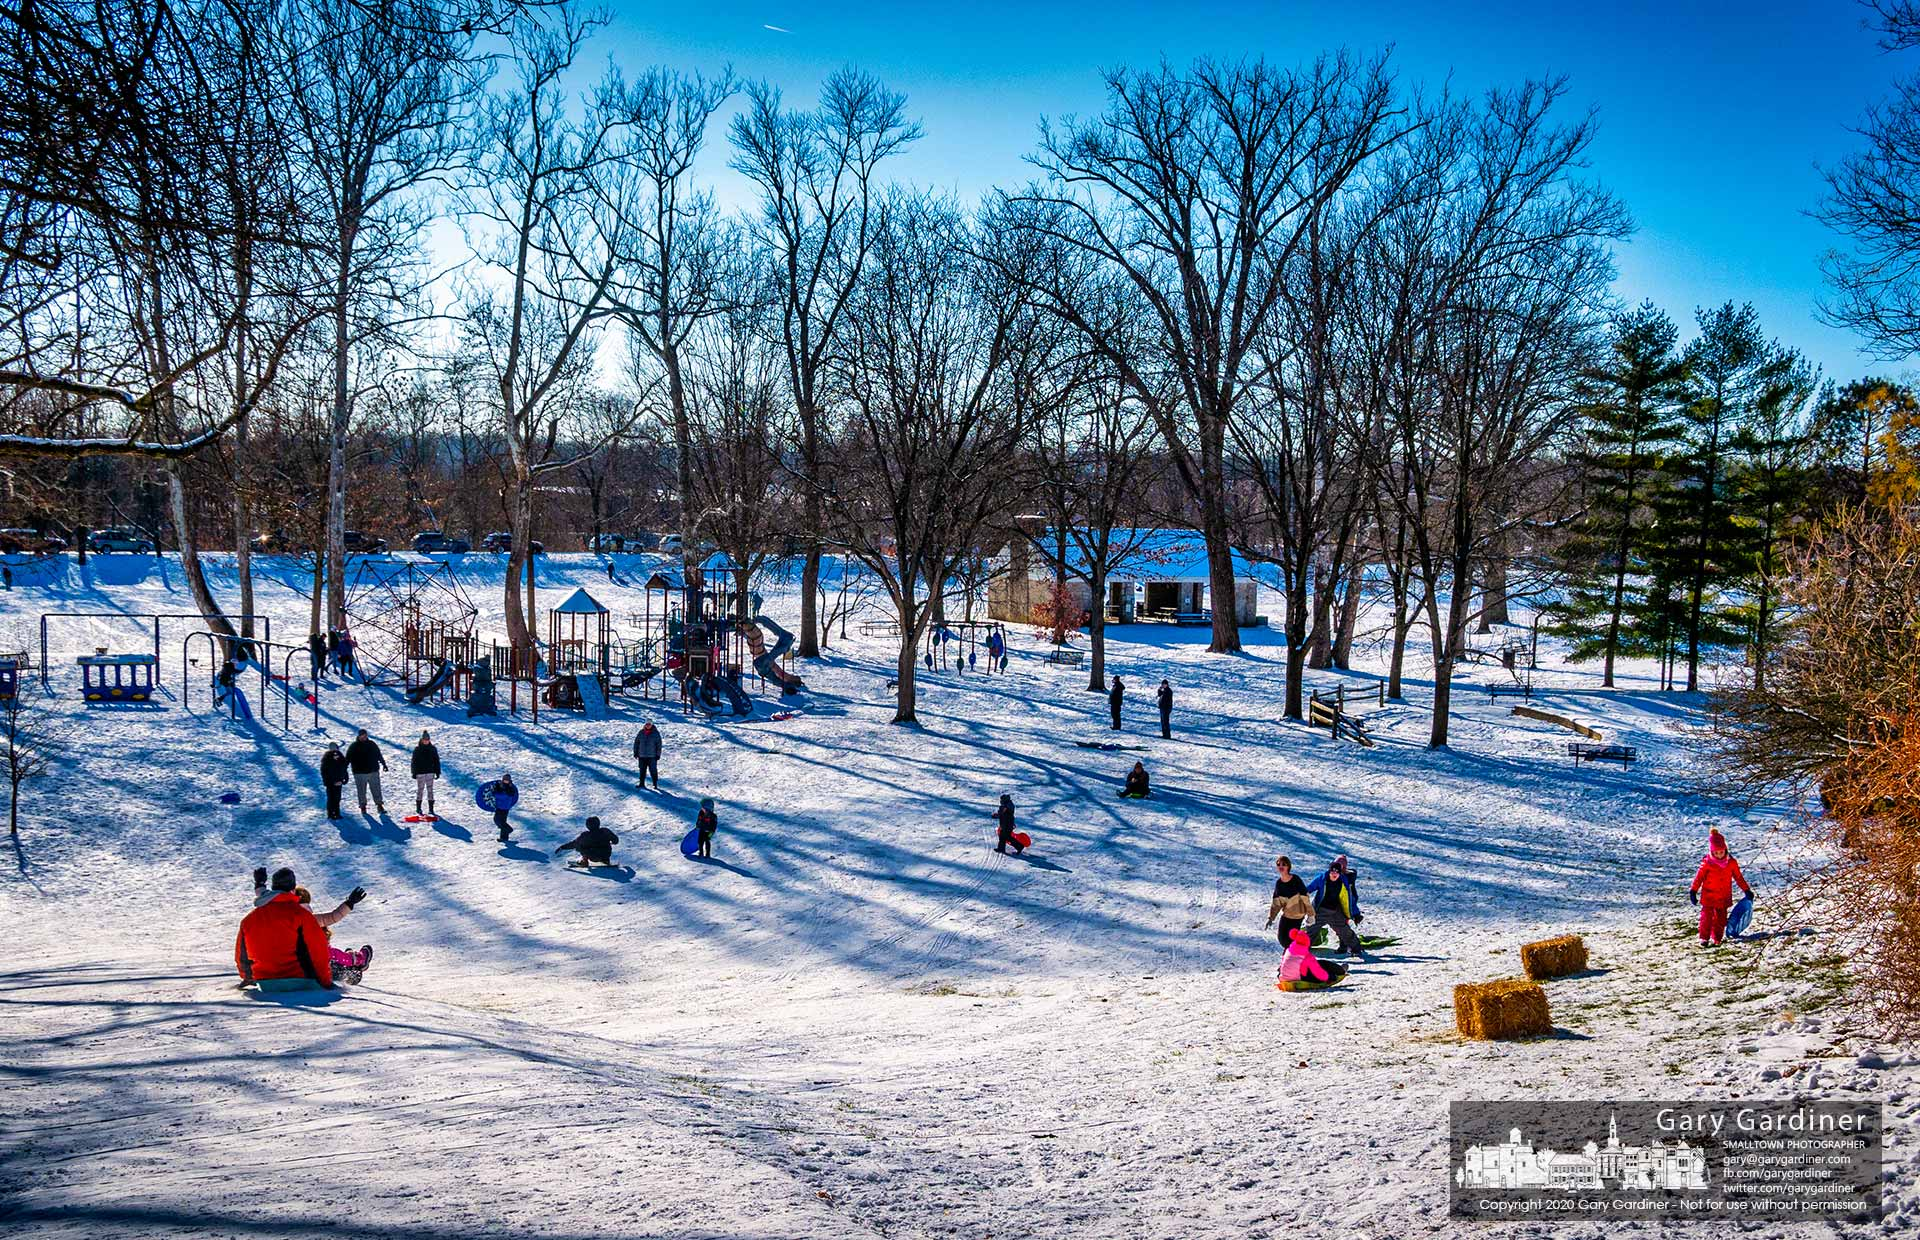 A collection of children, their parents, and friends take advantage of the fresh coating of snow laid over melted and frozen snow from an earlier fall to enjoy a day of rapidly descending the small sledding hill at Alum Creek Park in Westerville. My Final Photo for Dec. 26, 2020.